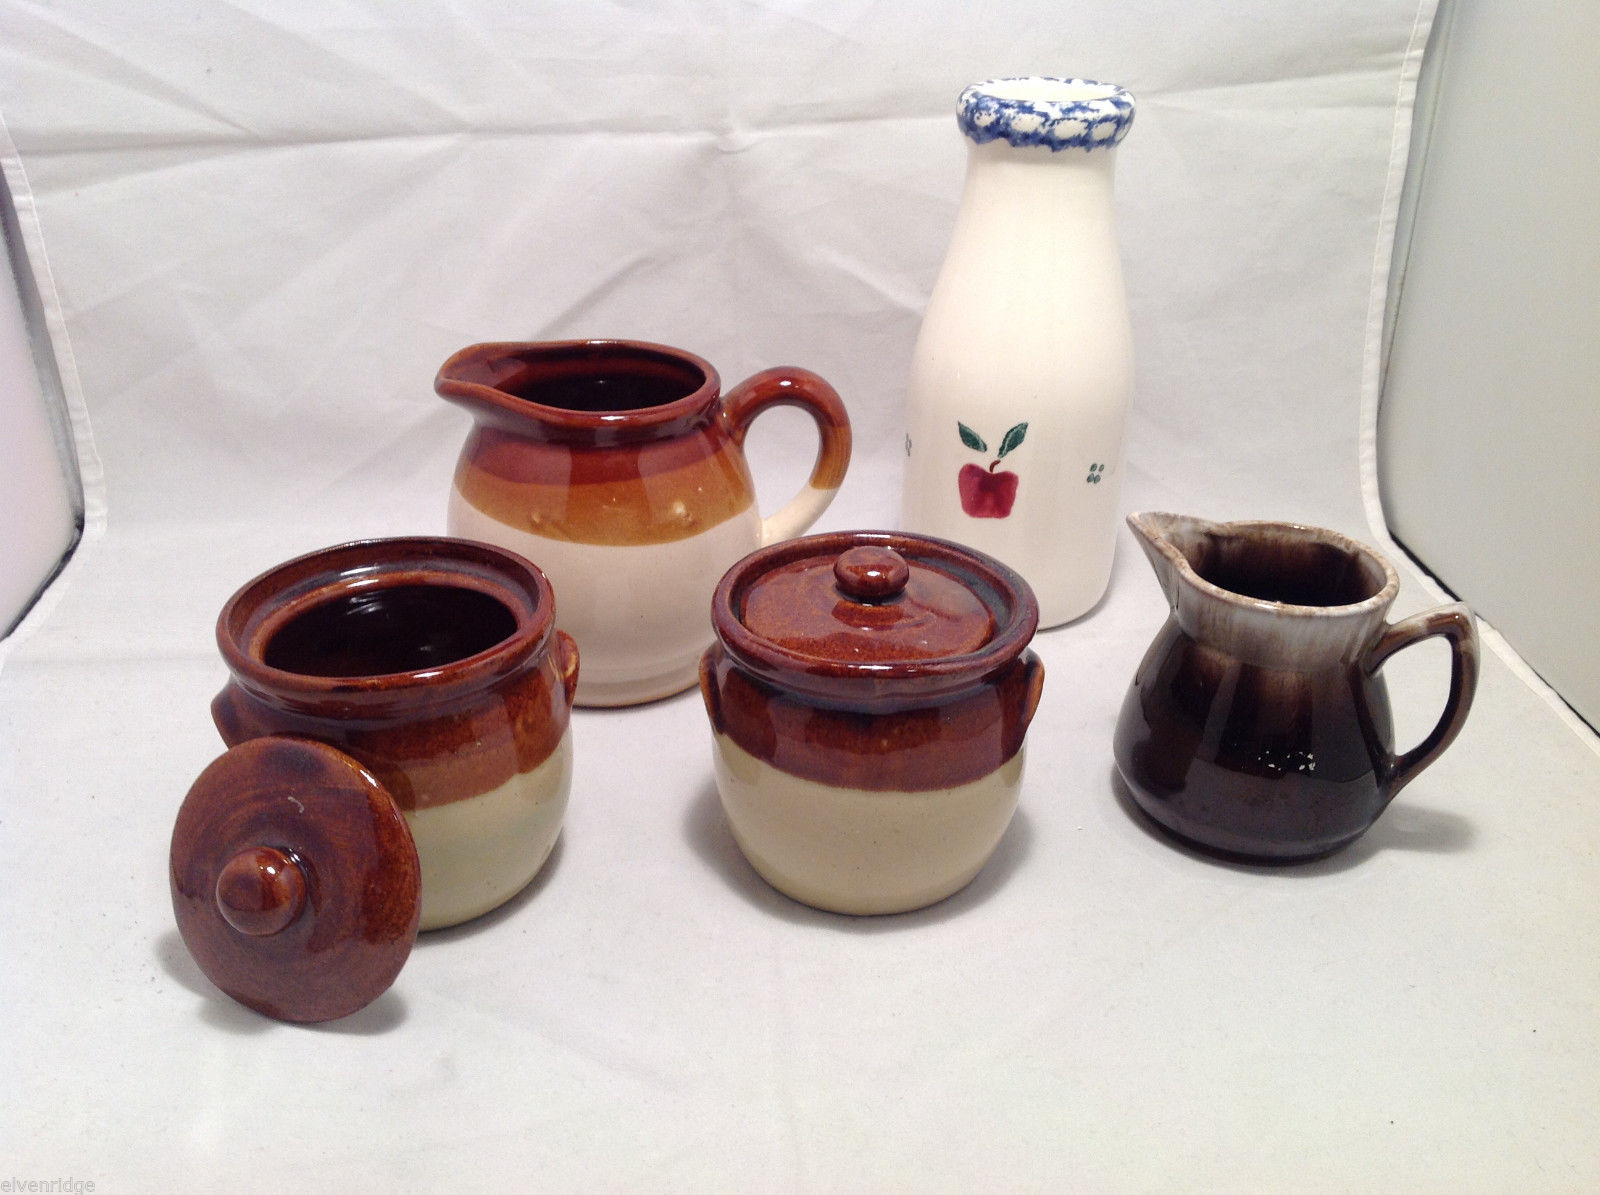 Set of 5 Rustic Glazed Country Pottery Pieces Creamer Jugs Sugar Bowls Milk Vase